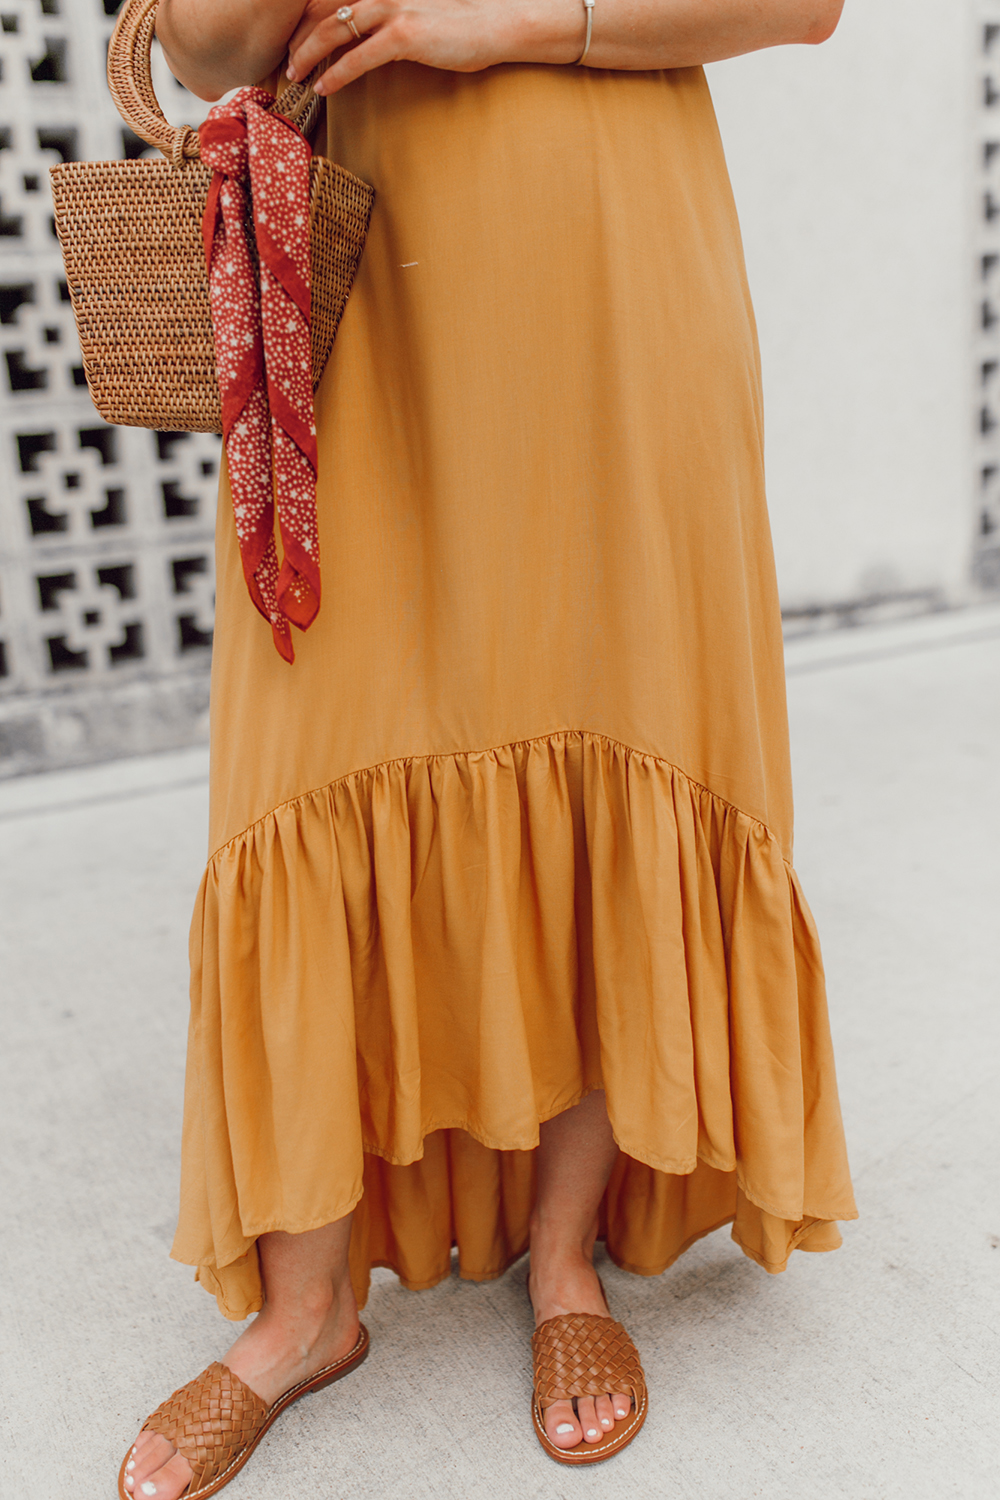 livvyland-blog-olivia-watson-mustard-canary-yellow-maxi-dress-love-sadie-summer-date-night-outfit-4